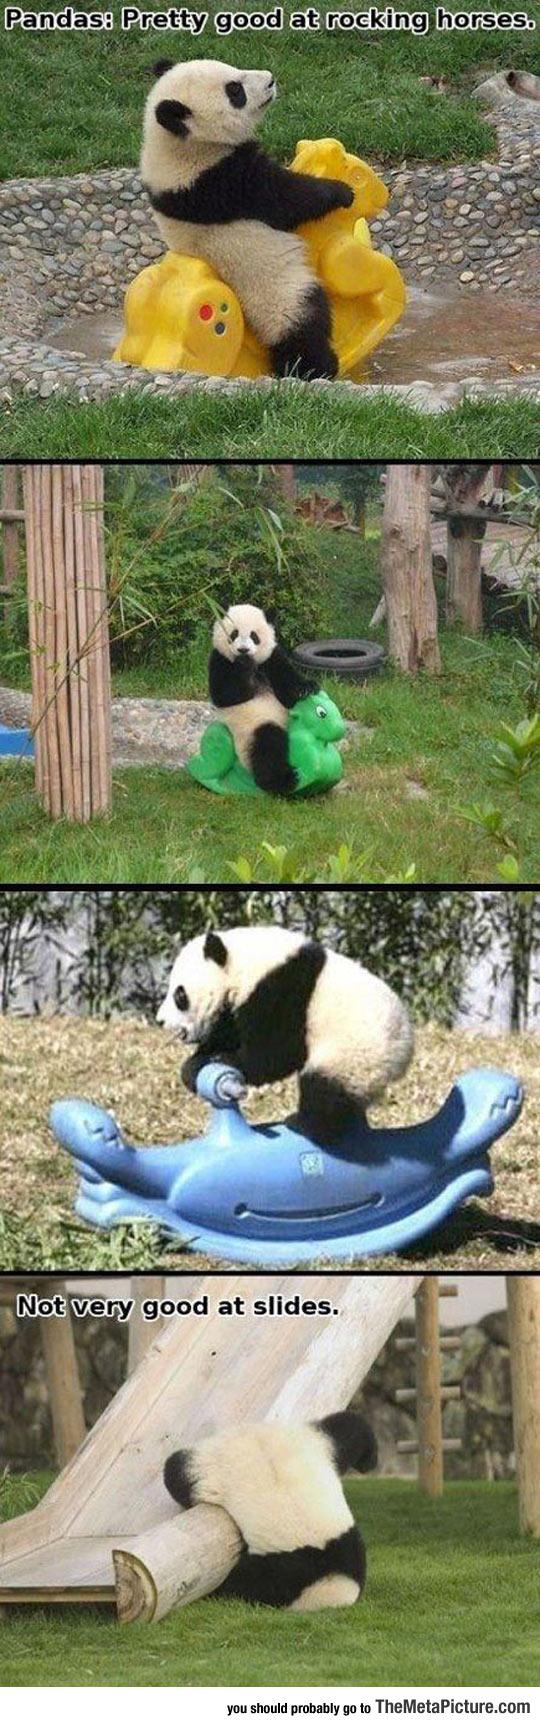 cool-panda-playing-rocking-horse